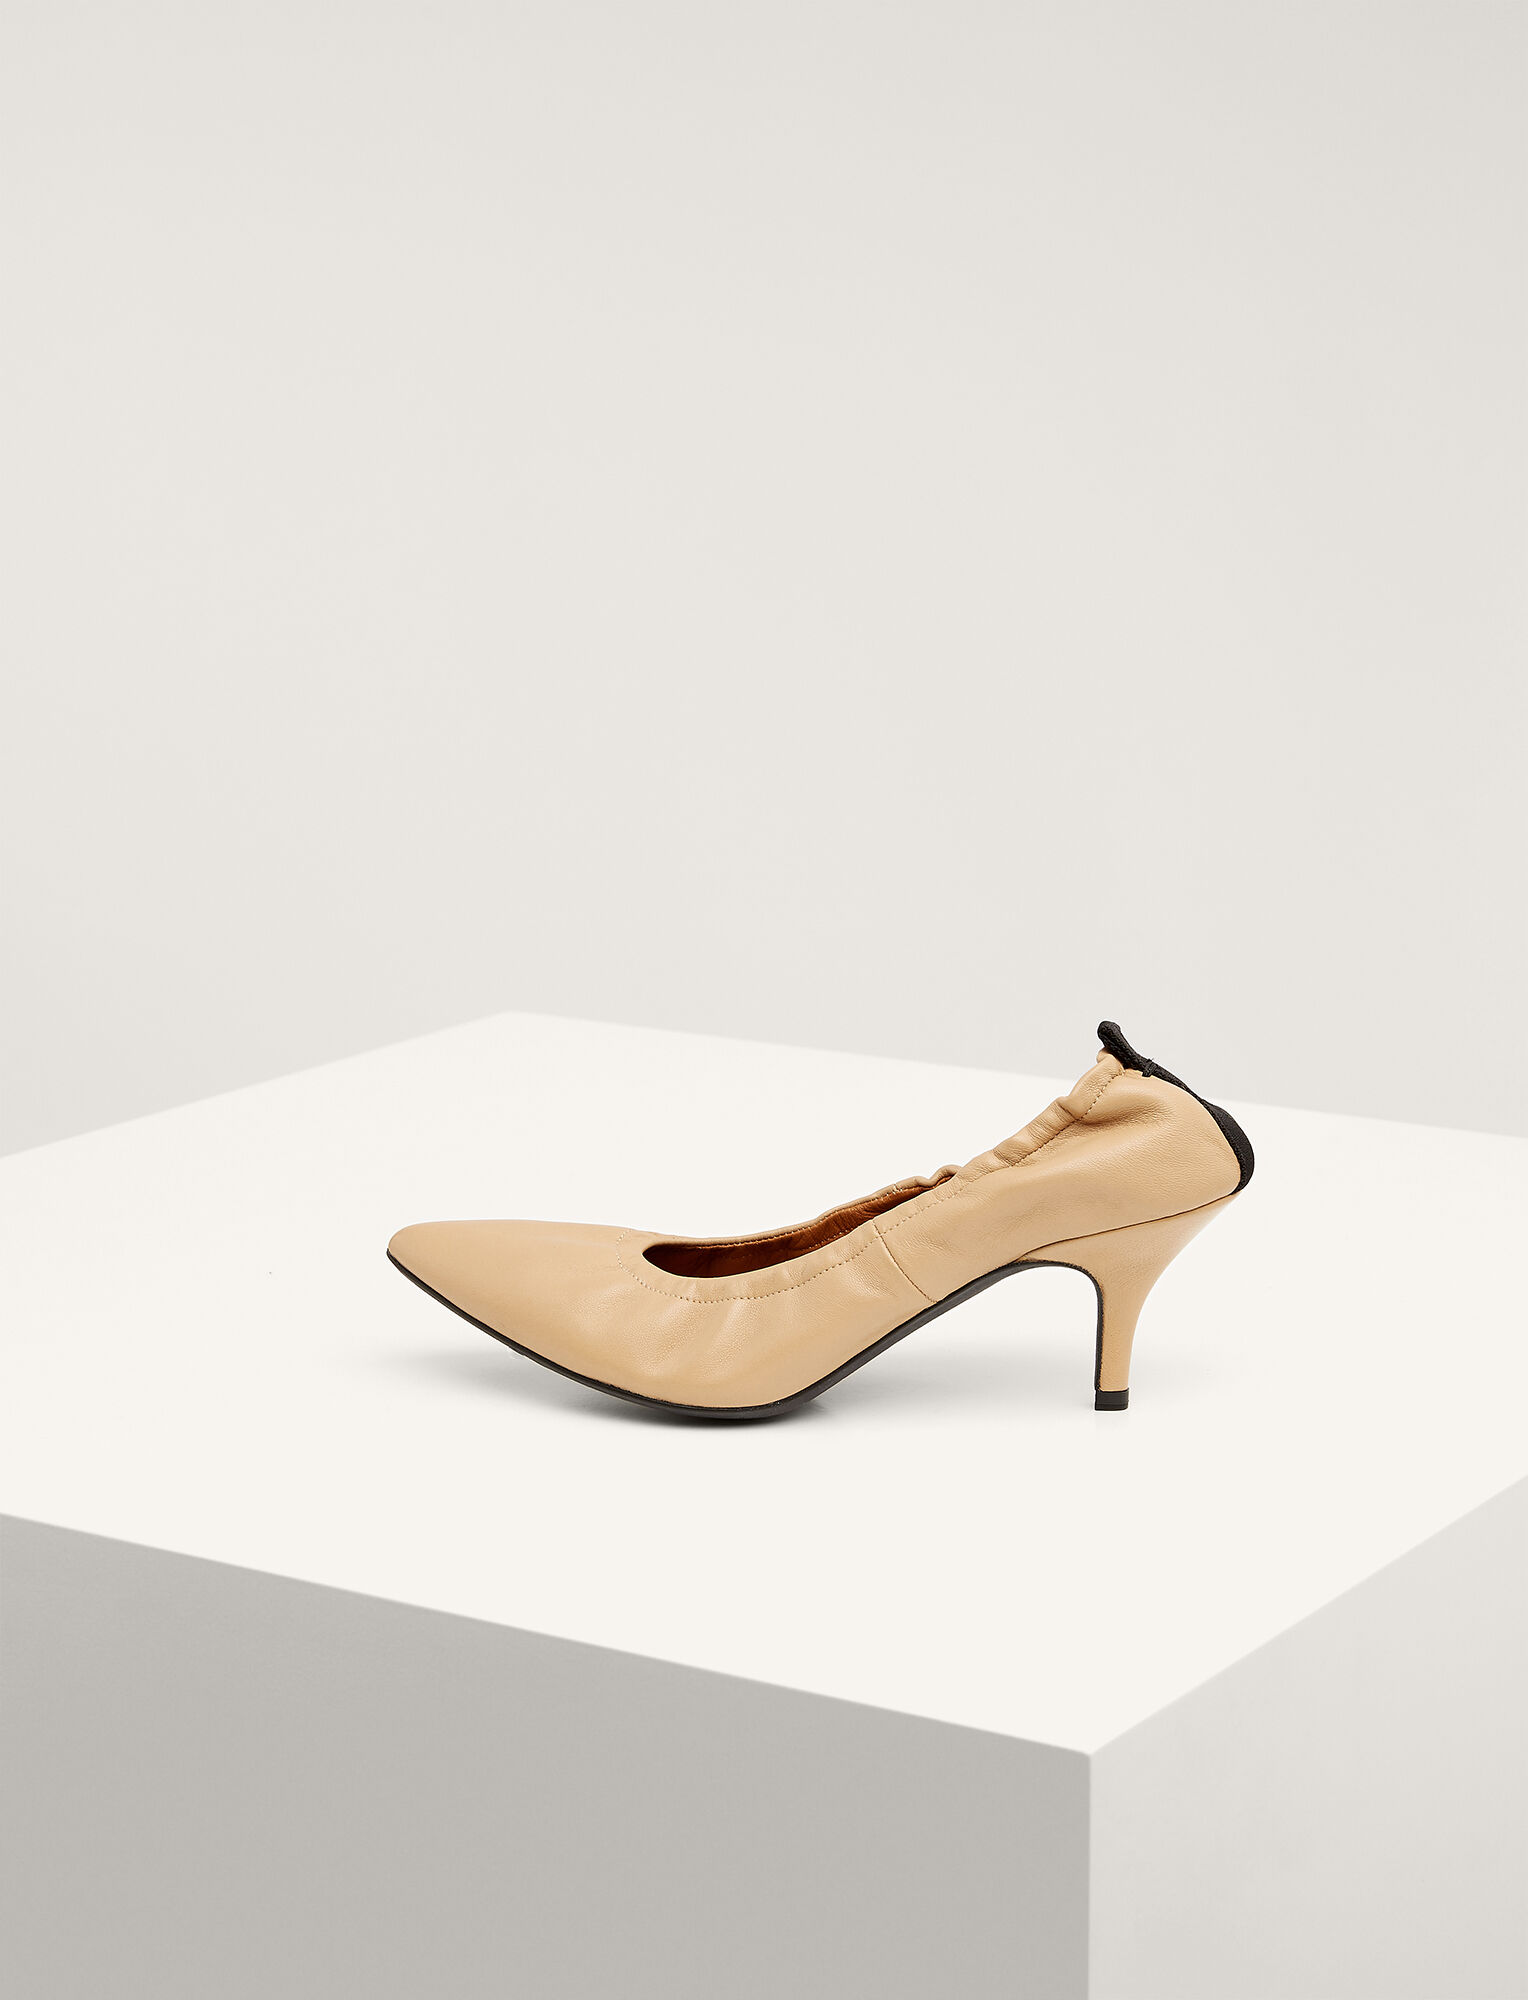 Joseph, Dallin Kitten Heel Pump, in CAMEL